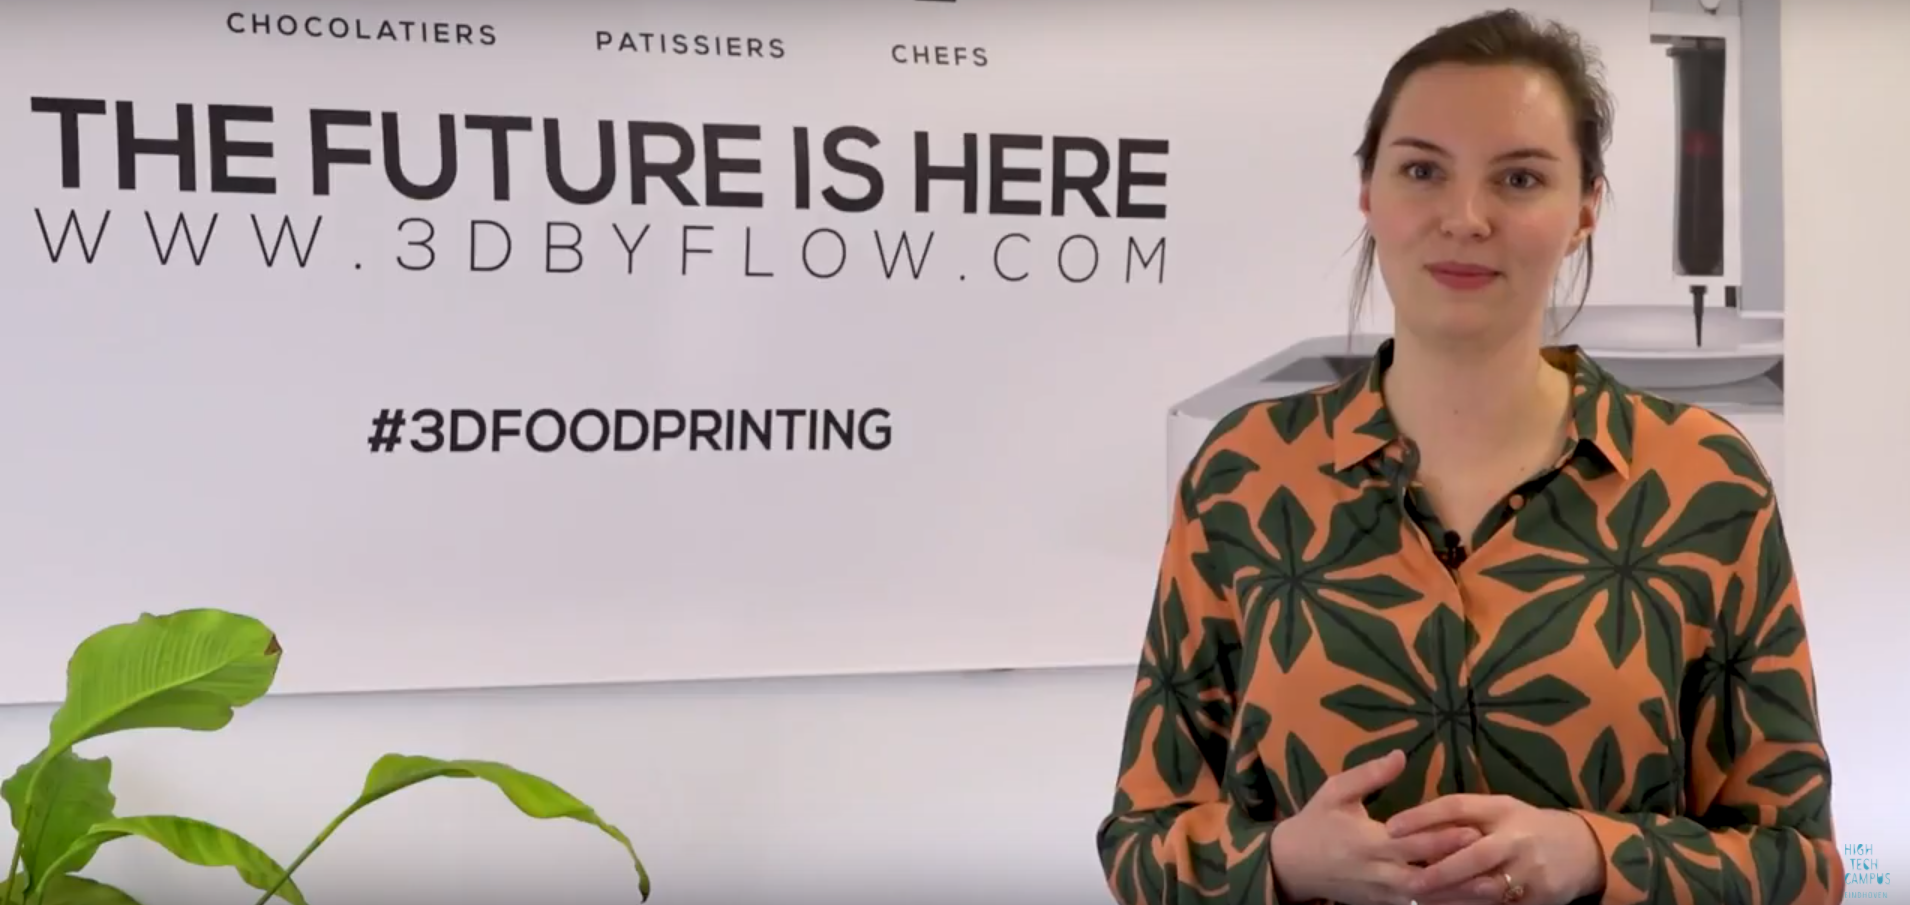 Video of 3D printed food